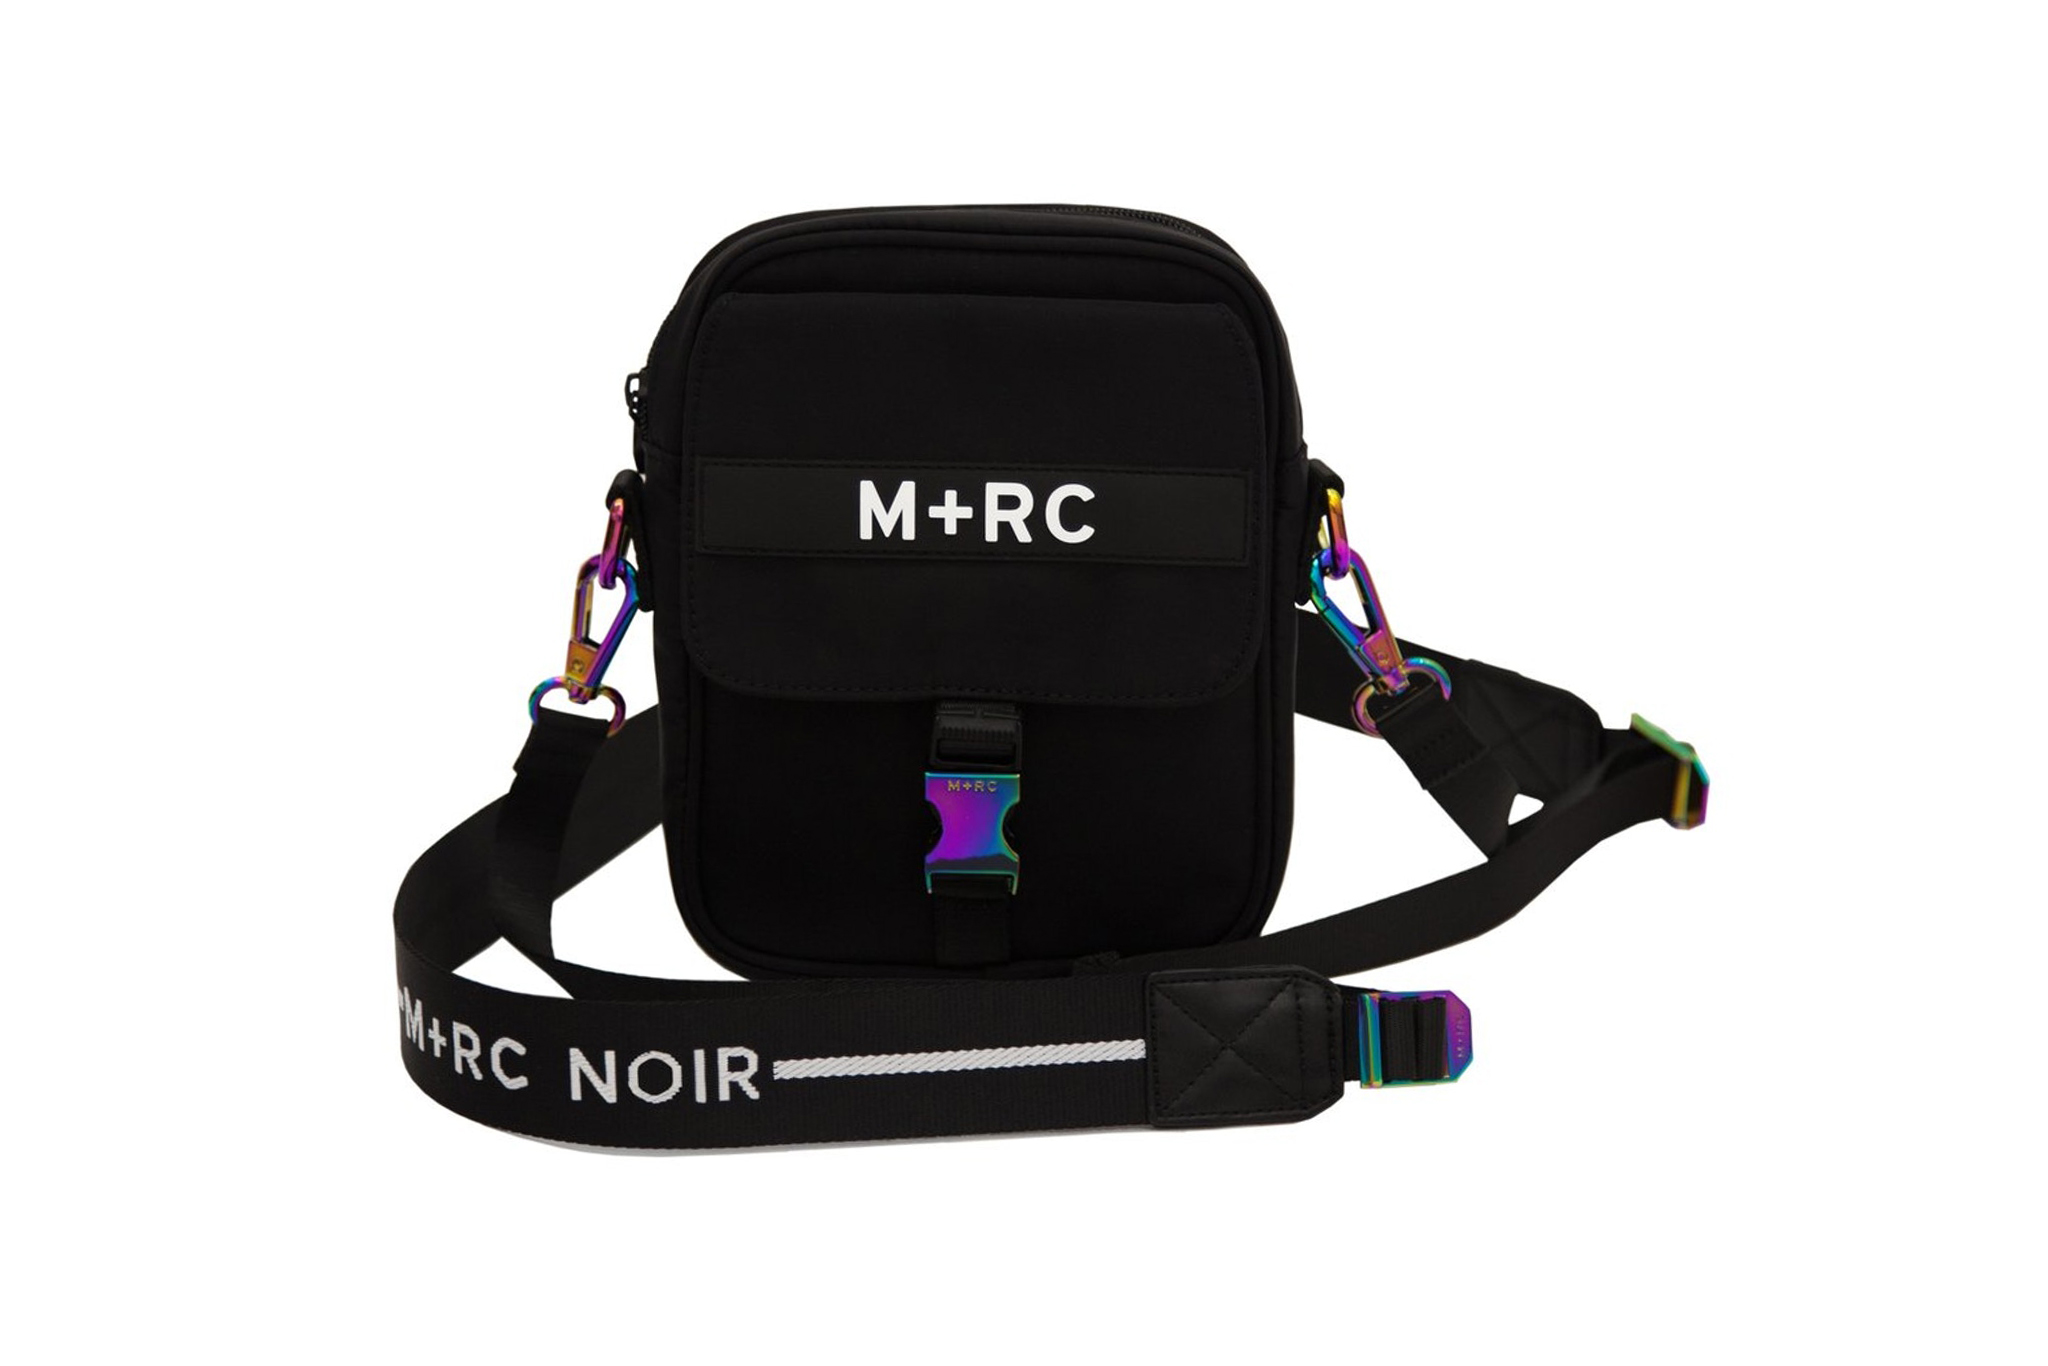 MR + C Noir bag